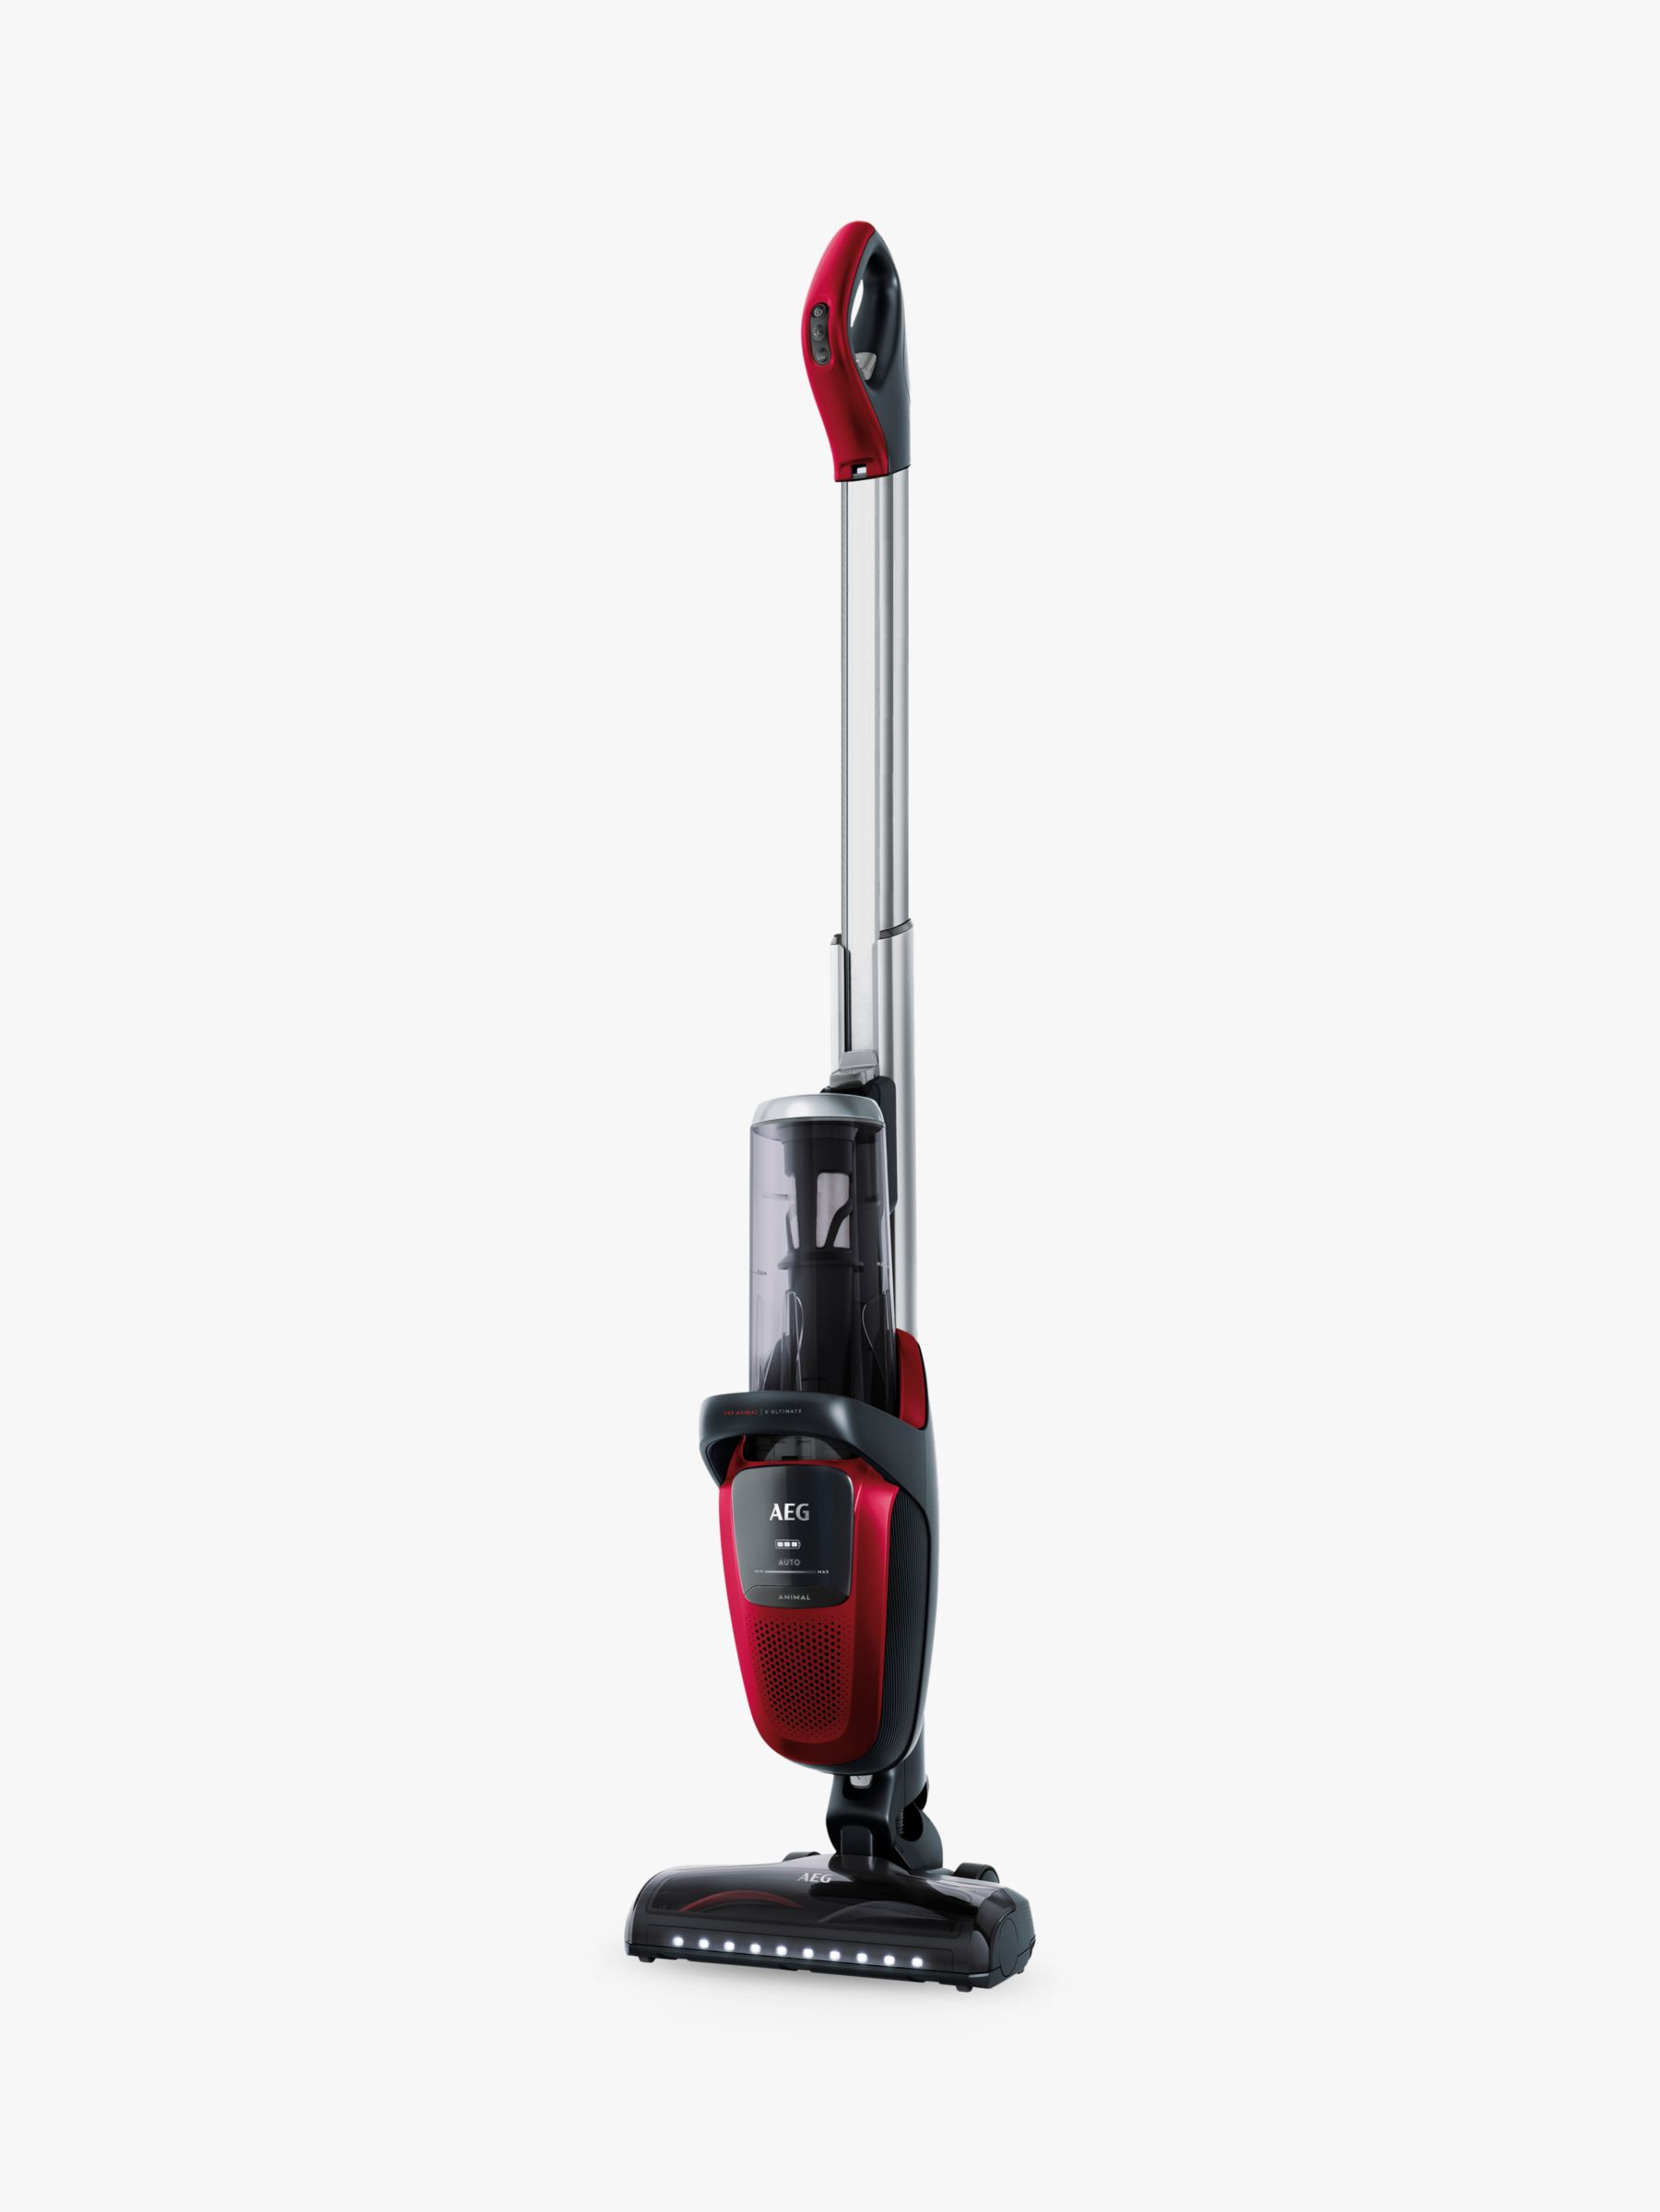 Aeg Online Shop Aeg Fx9 Ultimate Pet Cordless Vacuum Cleaner Chilli Red At John